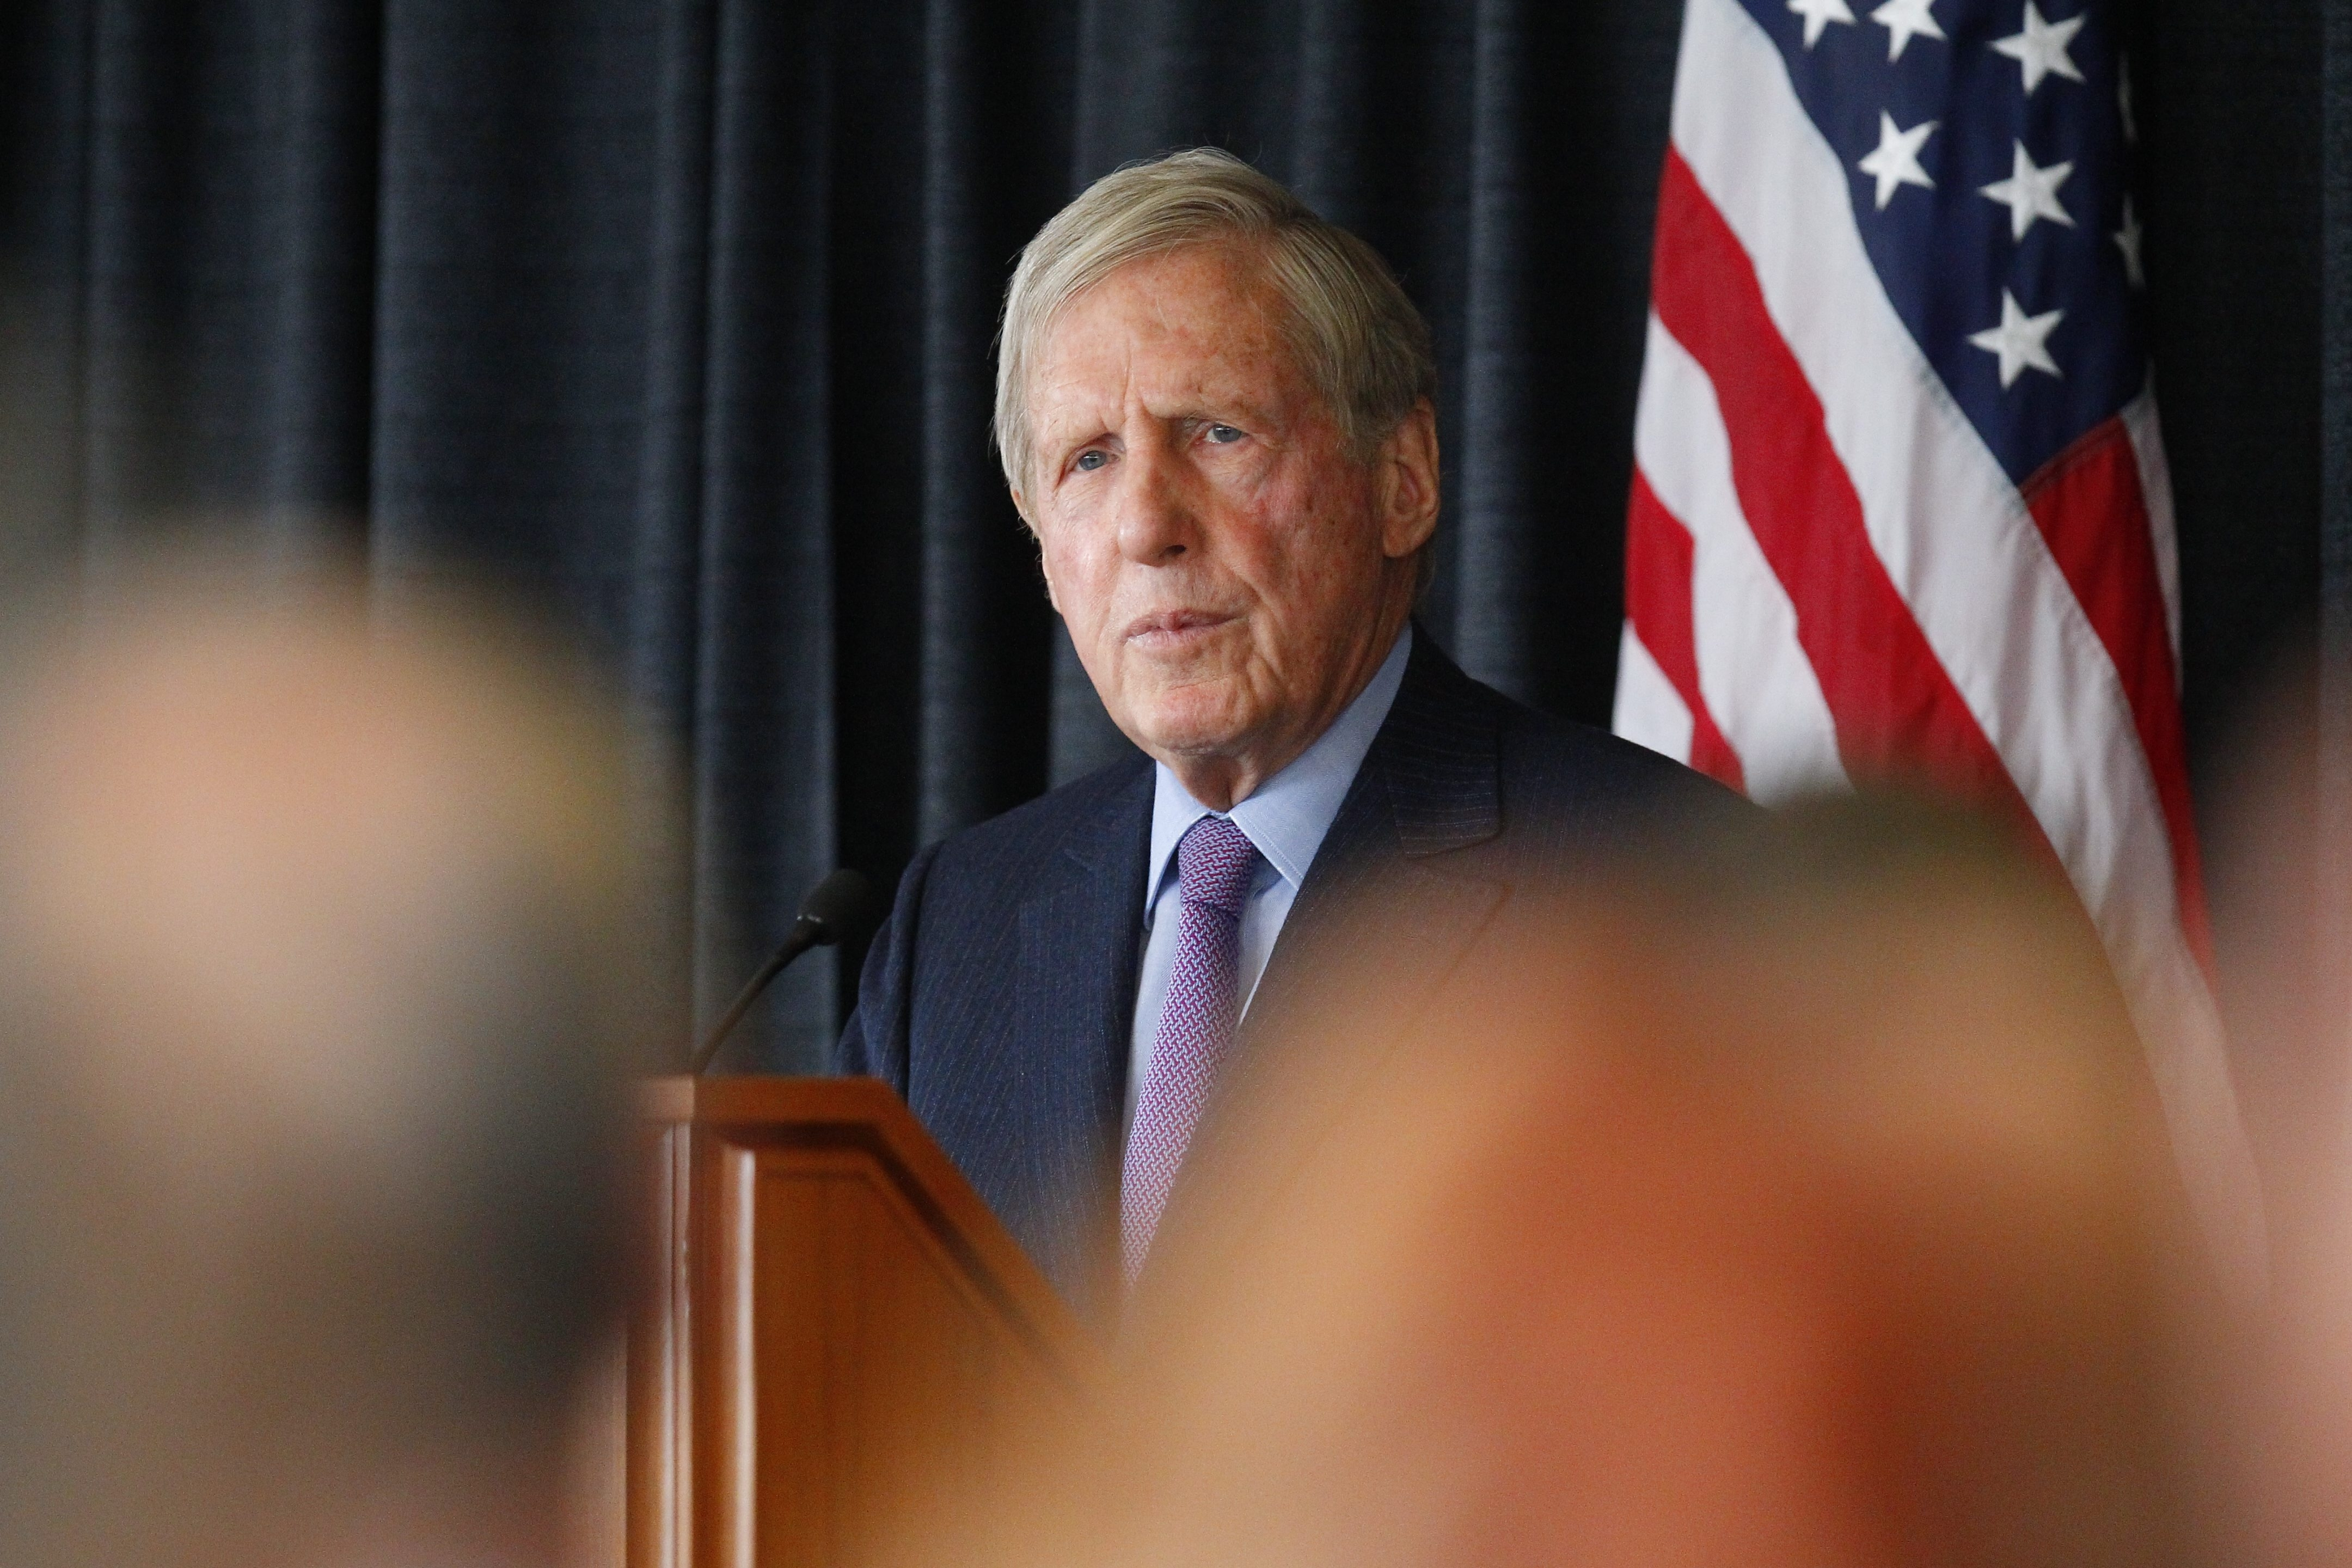 """Robert G. Wilmers, chairman and chief executive officer of M&T Bank Corp., speaks at the bank's annual meeting in Buffalo on Tuesday.    """"It will be harder than ever for banks to generate returns at the level at which shareholders have been accustomed."""" – Robert G. Wilmers, M&T Bank Corp. chairman and CEO"""